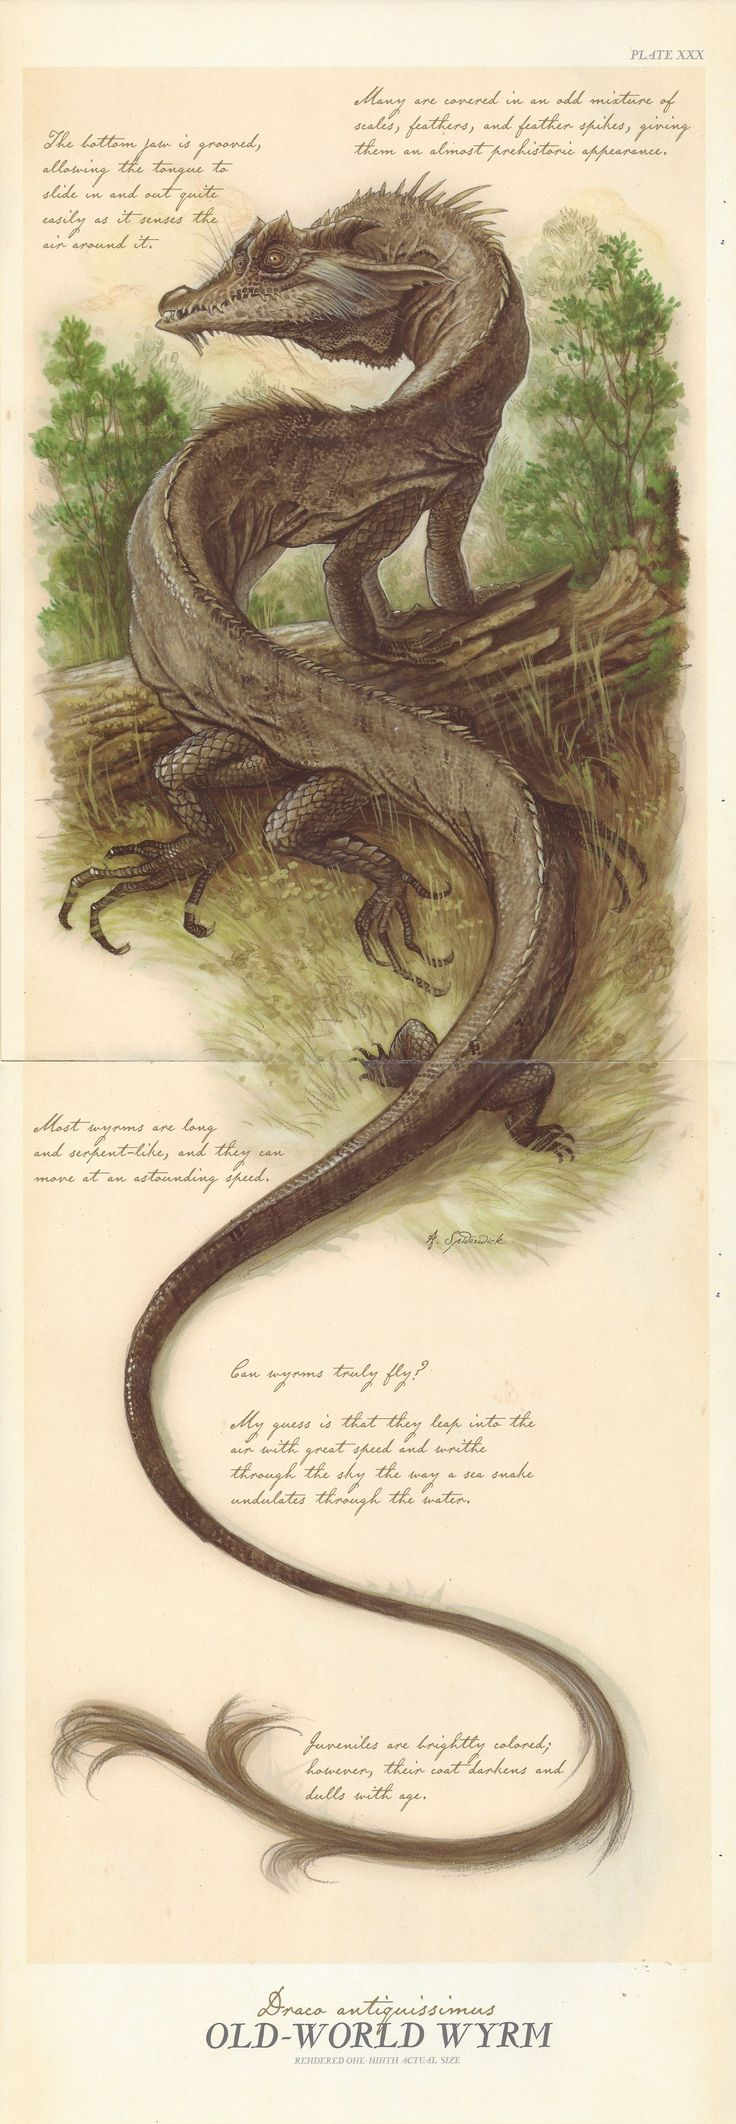 Formidable predators, dragons(also known as wyrms and drakes) are massive in size with fearsome teeth, deadly breath, vicious claws, and hides like stone. Dragons generally make their home in caves and mountains, far from humankind, but when they come close to people, their huge appetite is generally a source of conflict.